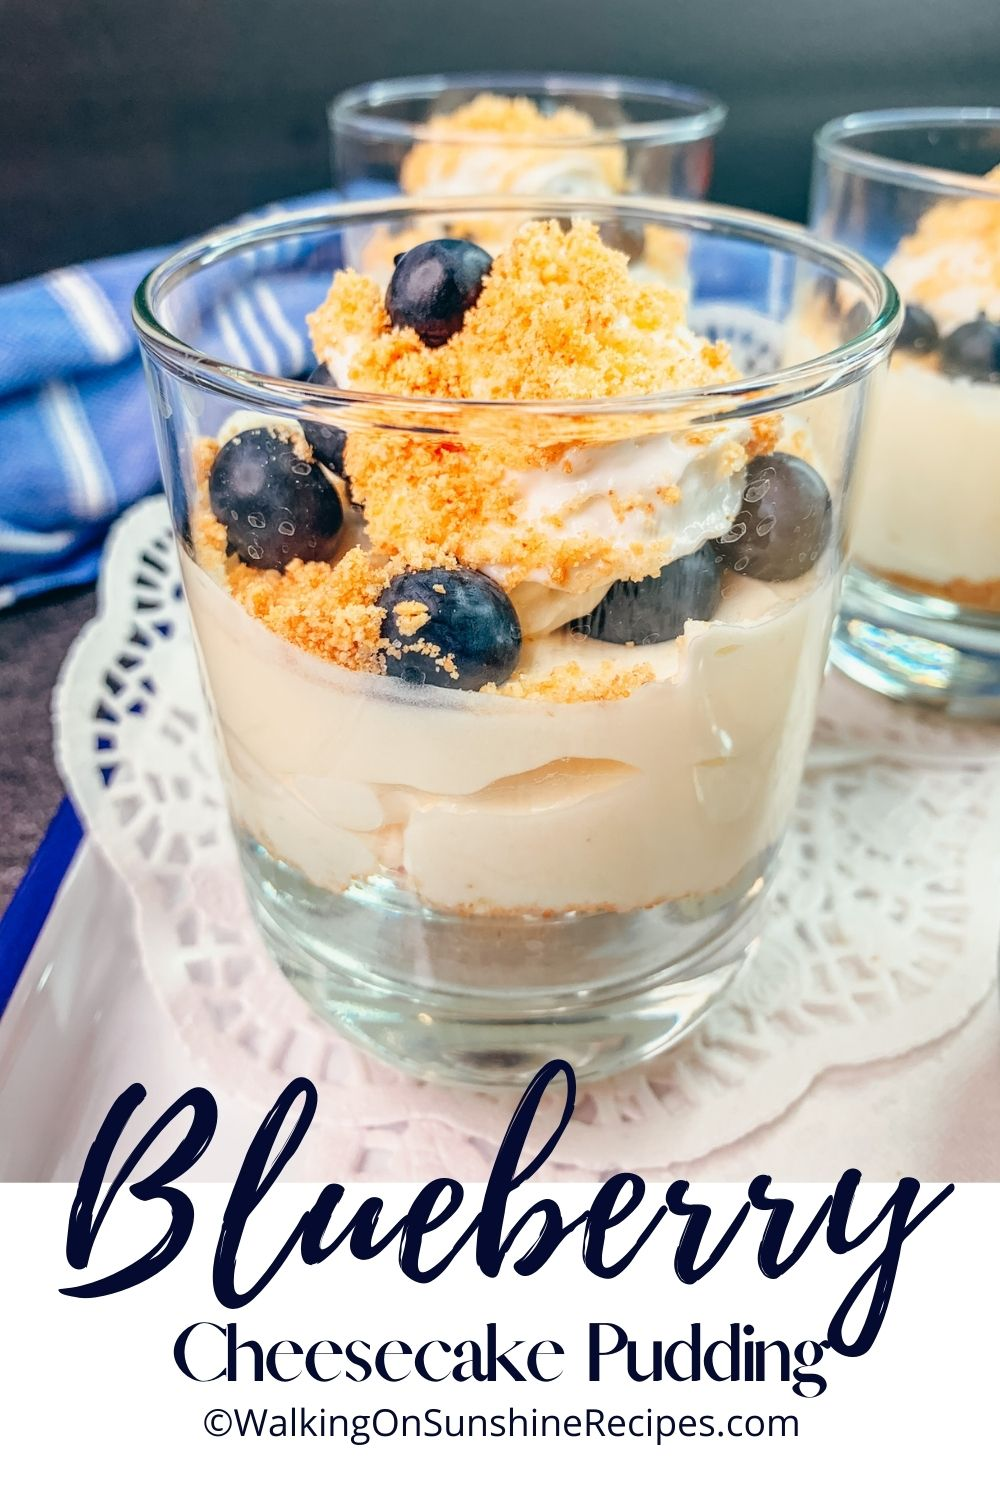 cheesecake pudding in cup with blueberries on top.